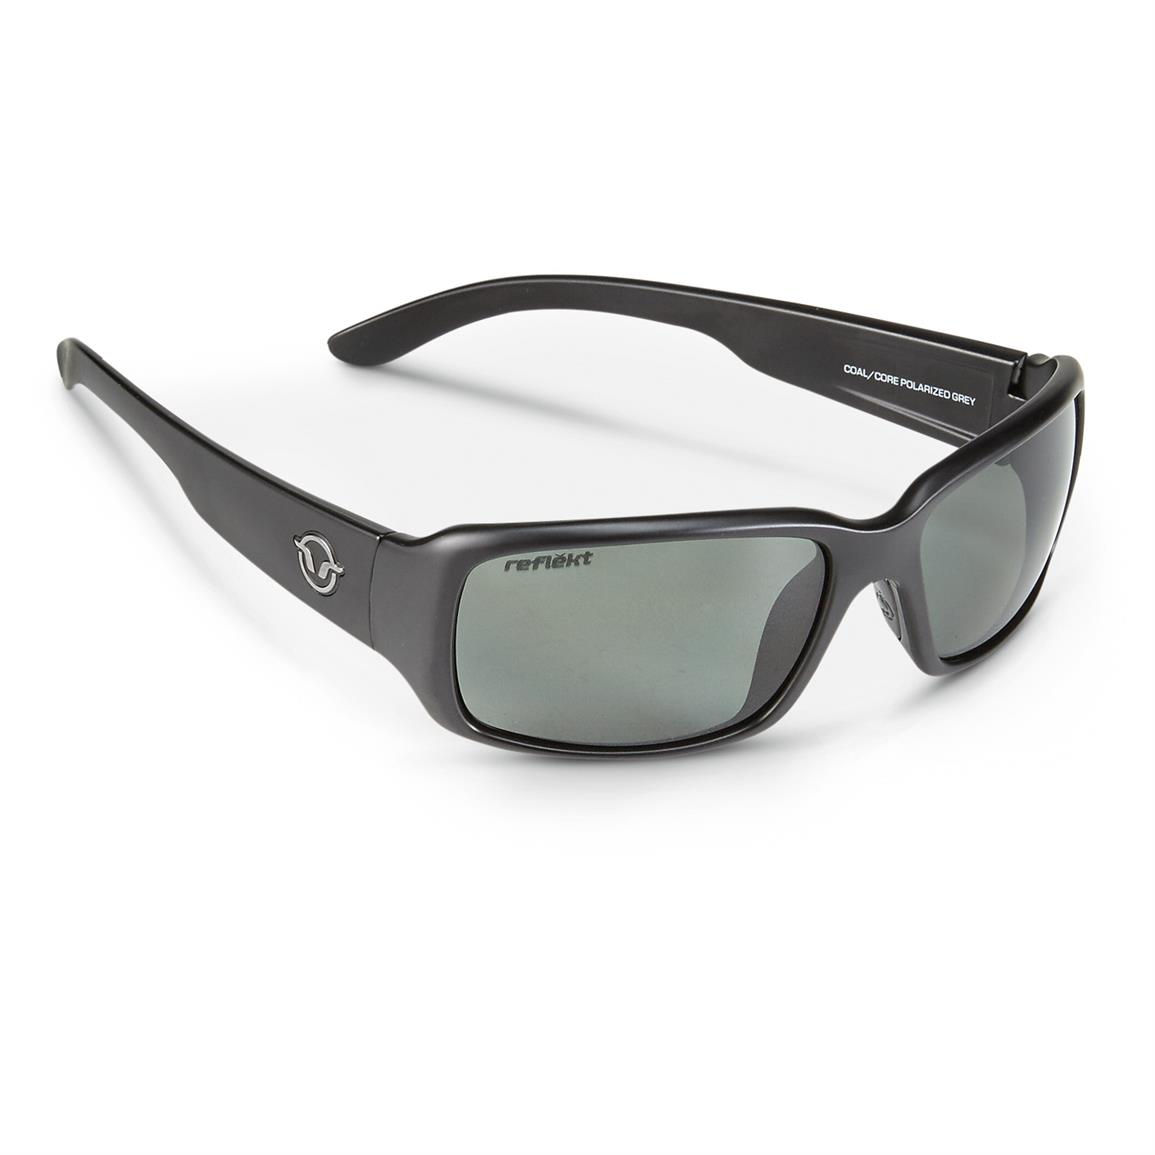 Reflekt Polarized Contact Sunglasses